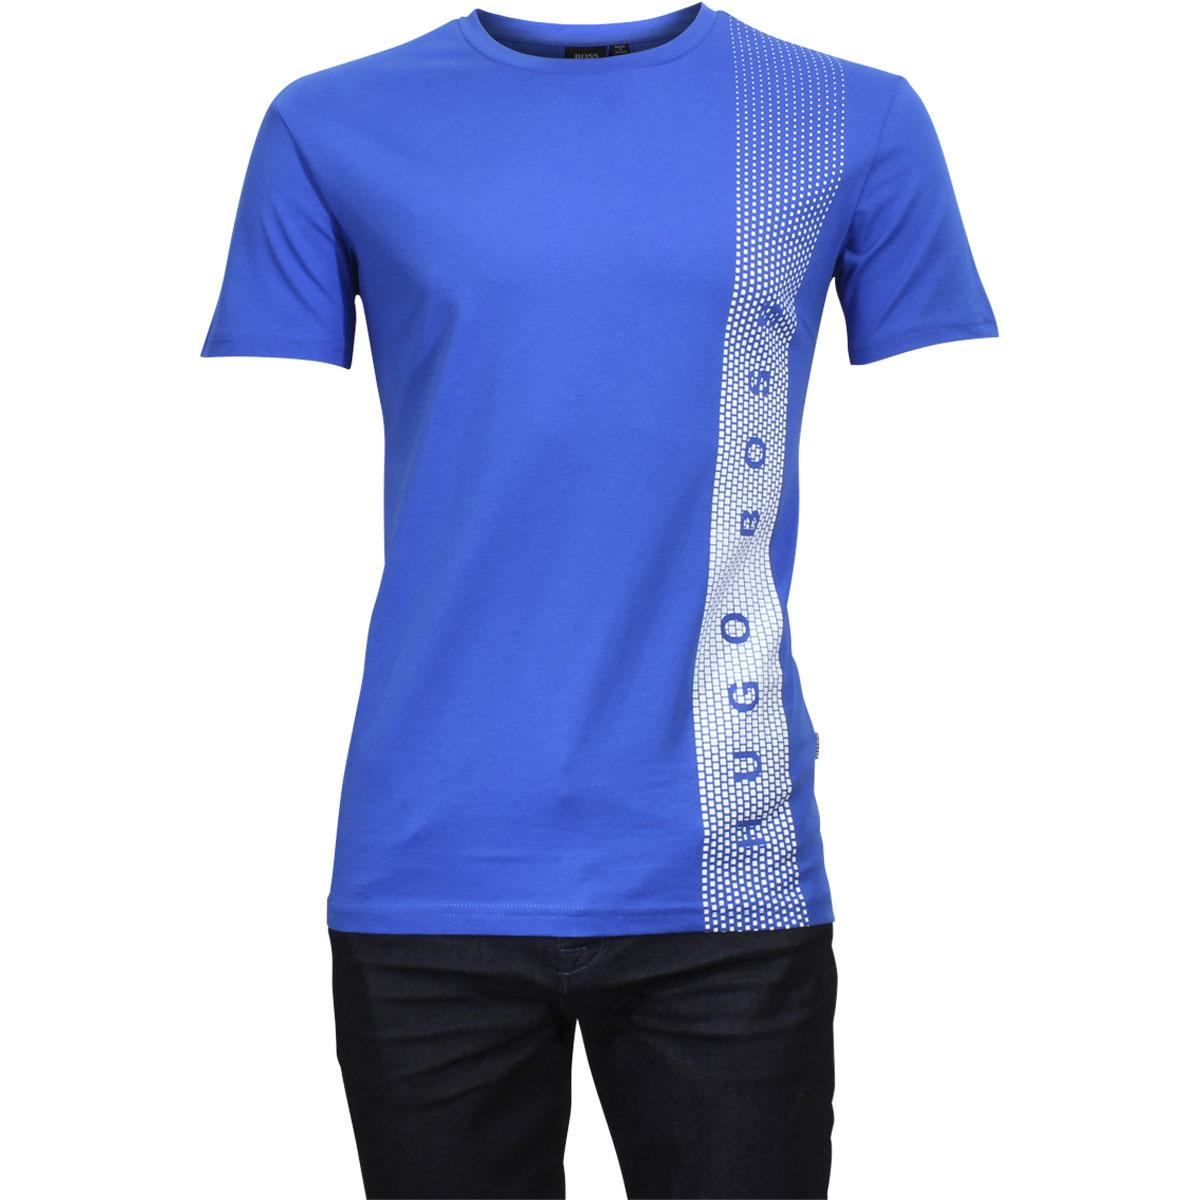 c0740583 Hugo Boss Men's Crew Neck UV Protection Slim Fit Short Sleeve T-Shirt